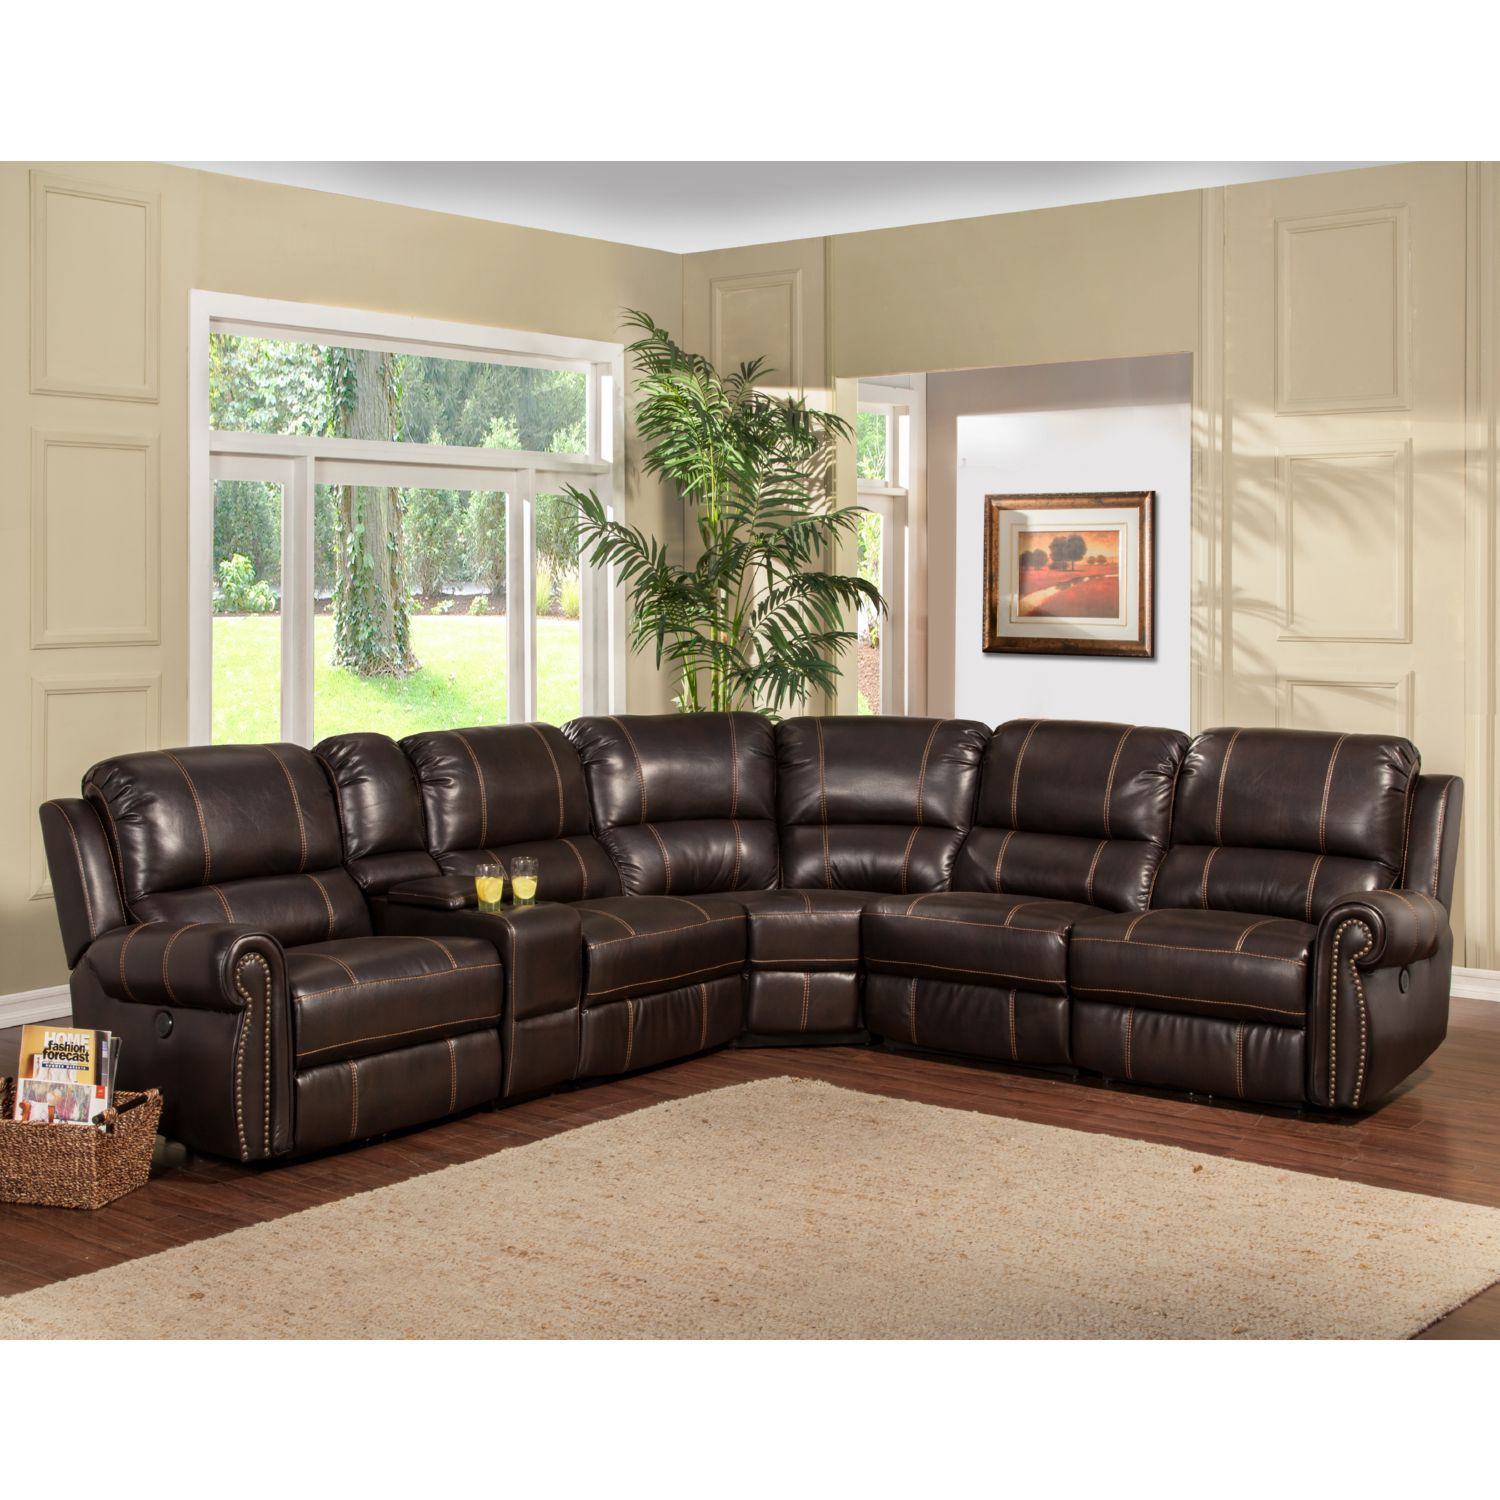 Parker House MWEB PACKA SUM Webber 6 Piece Power Recliner Sofa